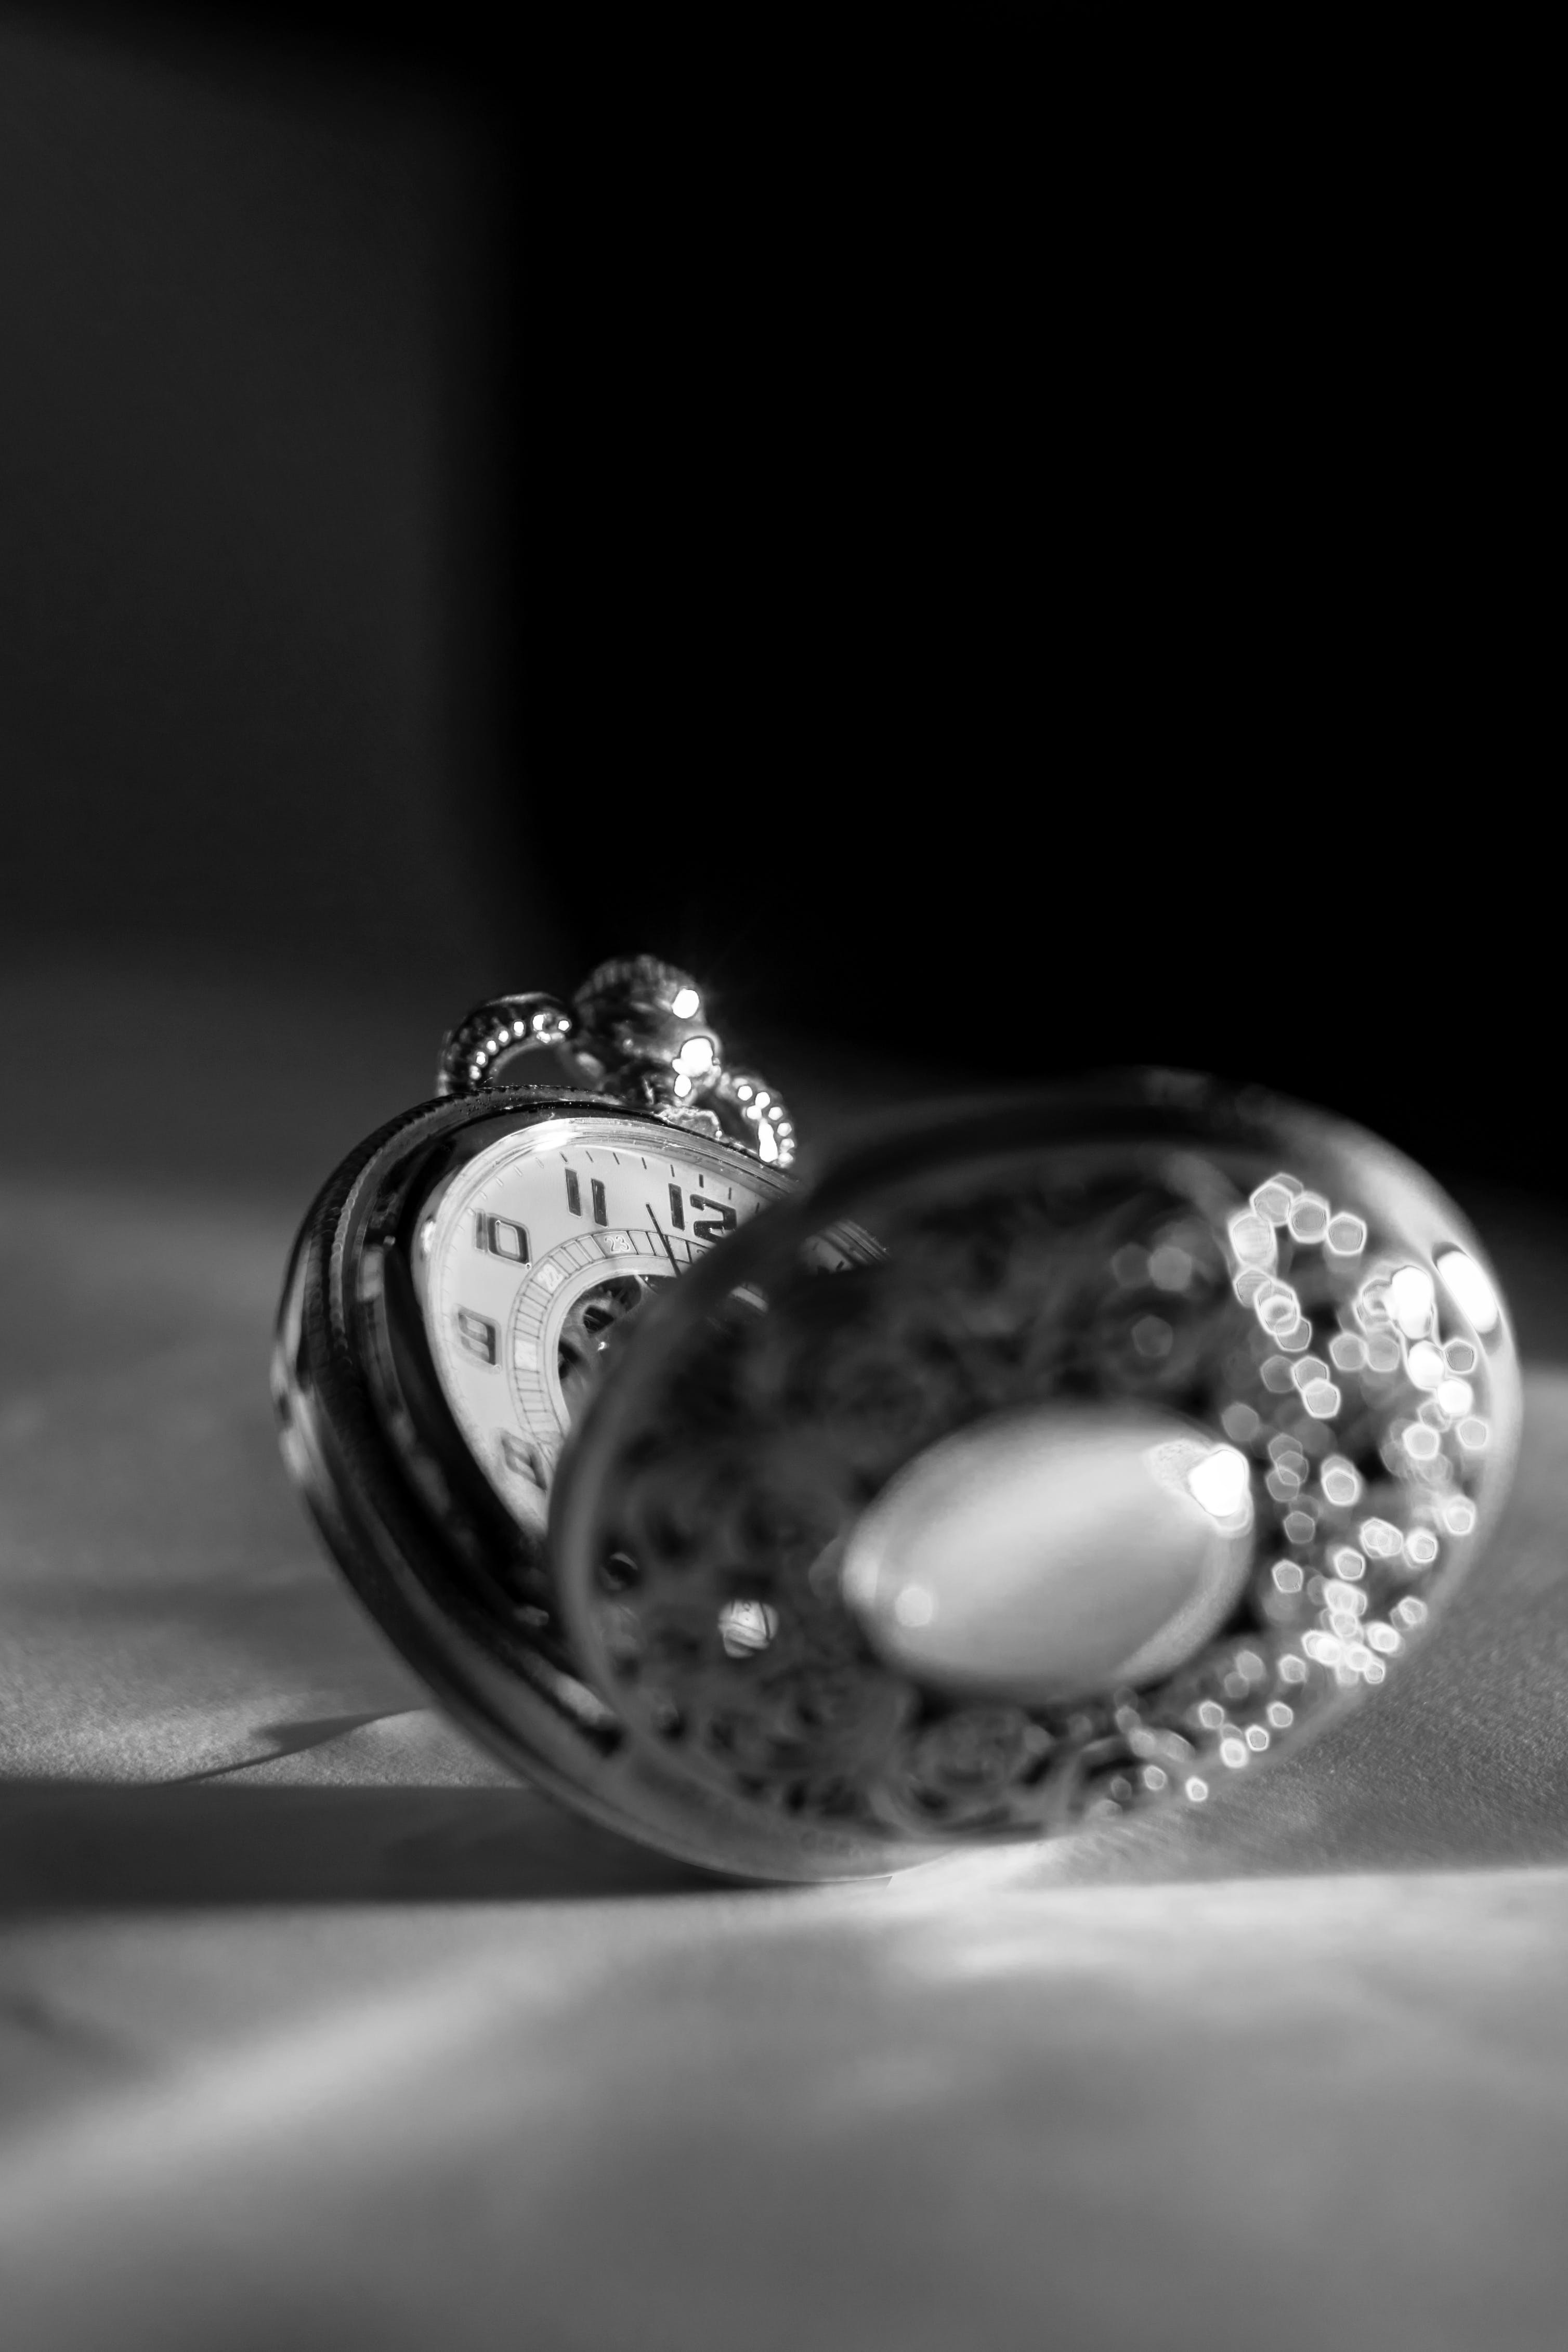 Grayscale Photo Of Pocket Watch